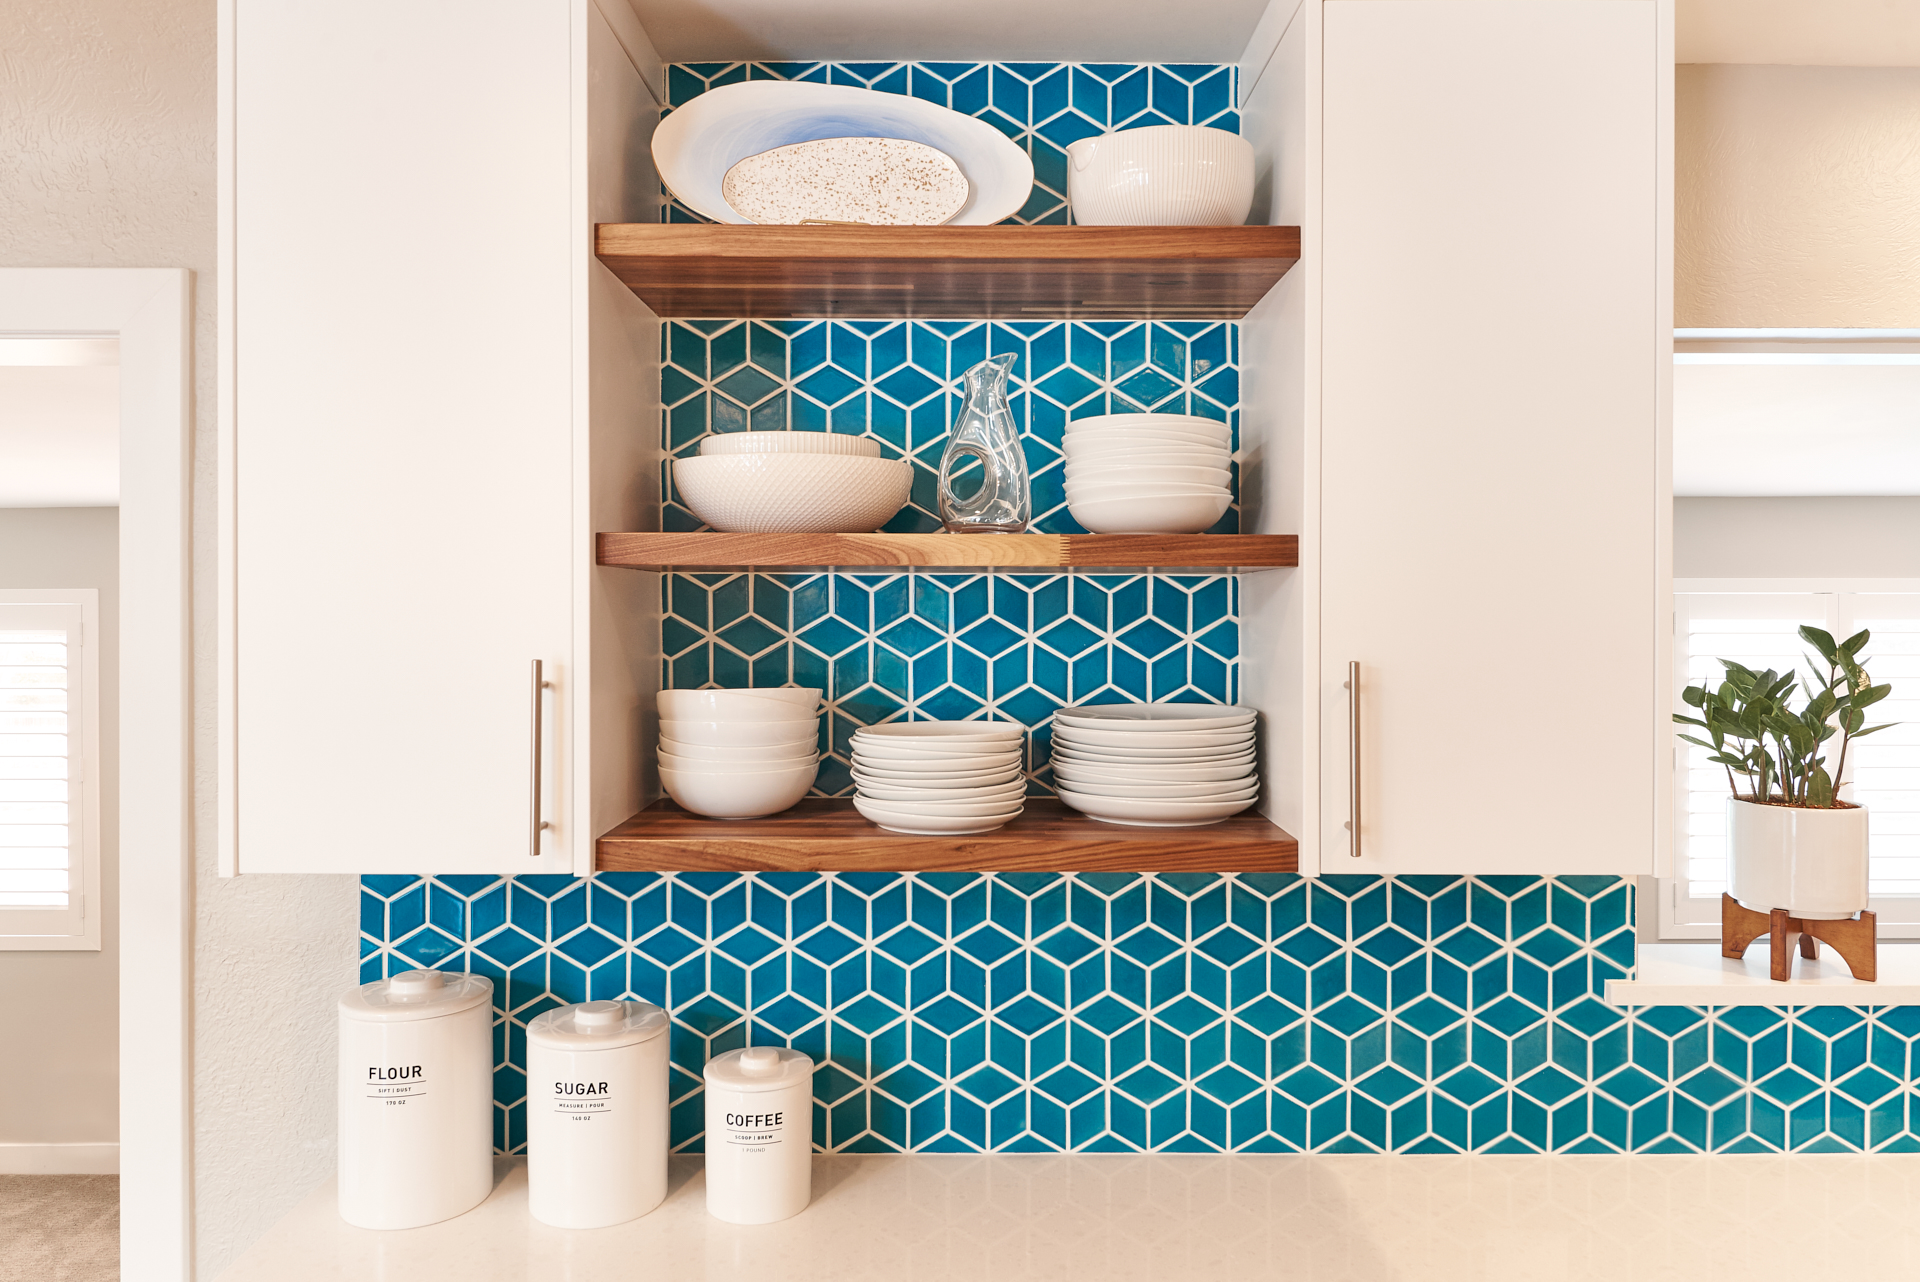 Modern open shelving for dishes and an interior design flair in colorado with an accent backsplash